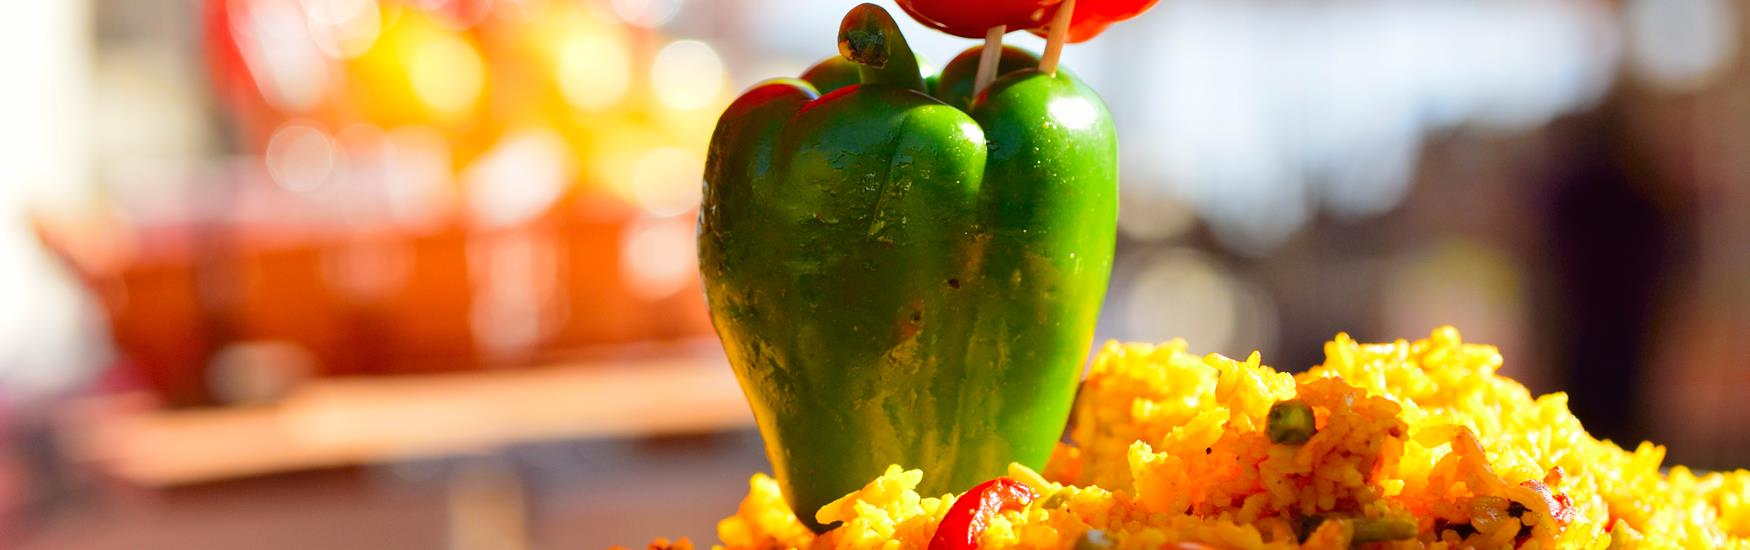 A paella prepared with pepper garnish - food and drink experiences